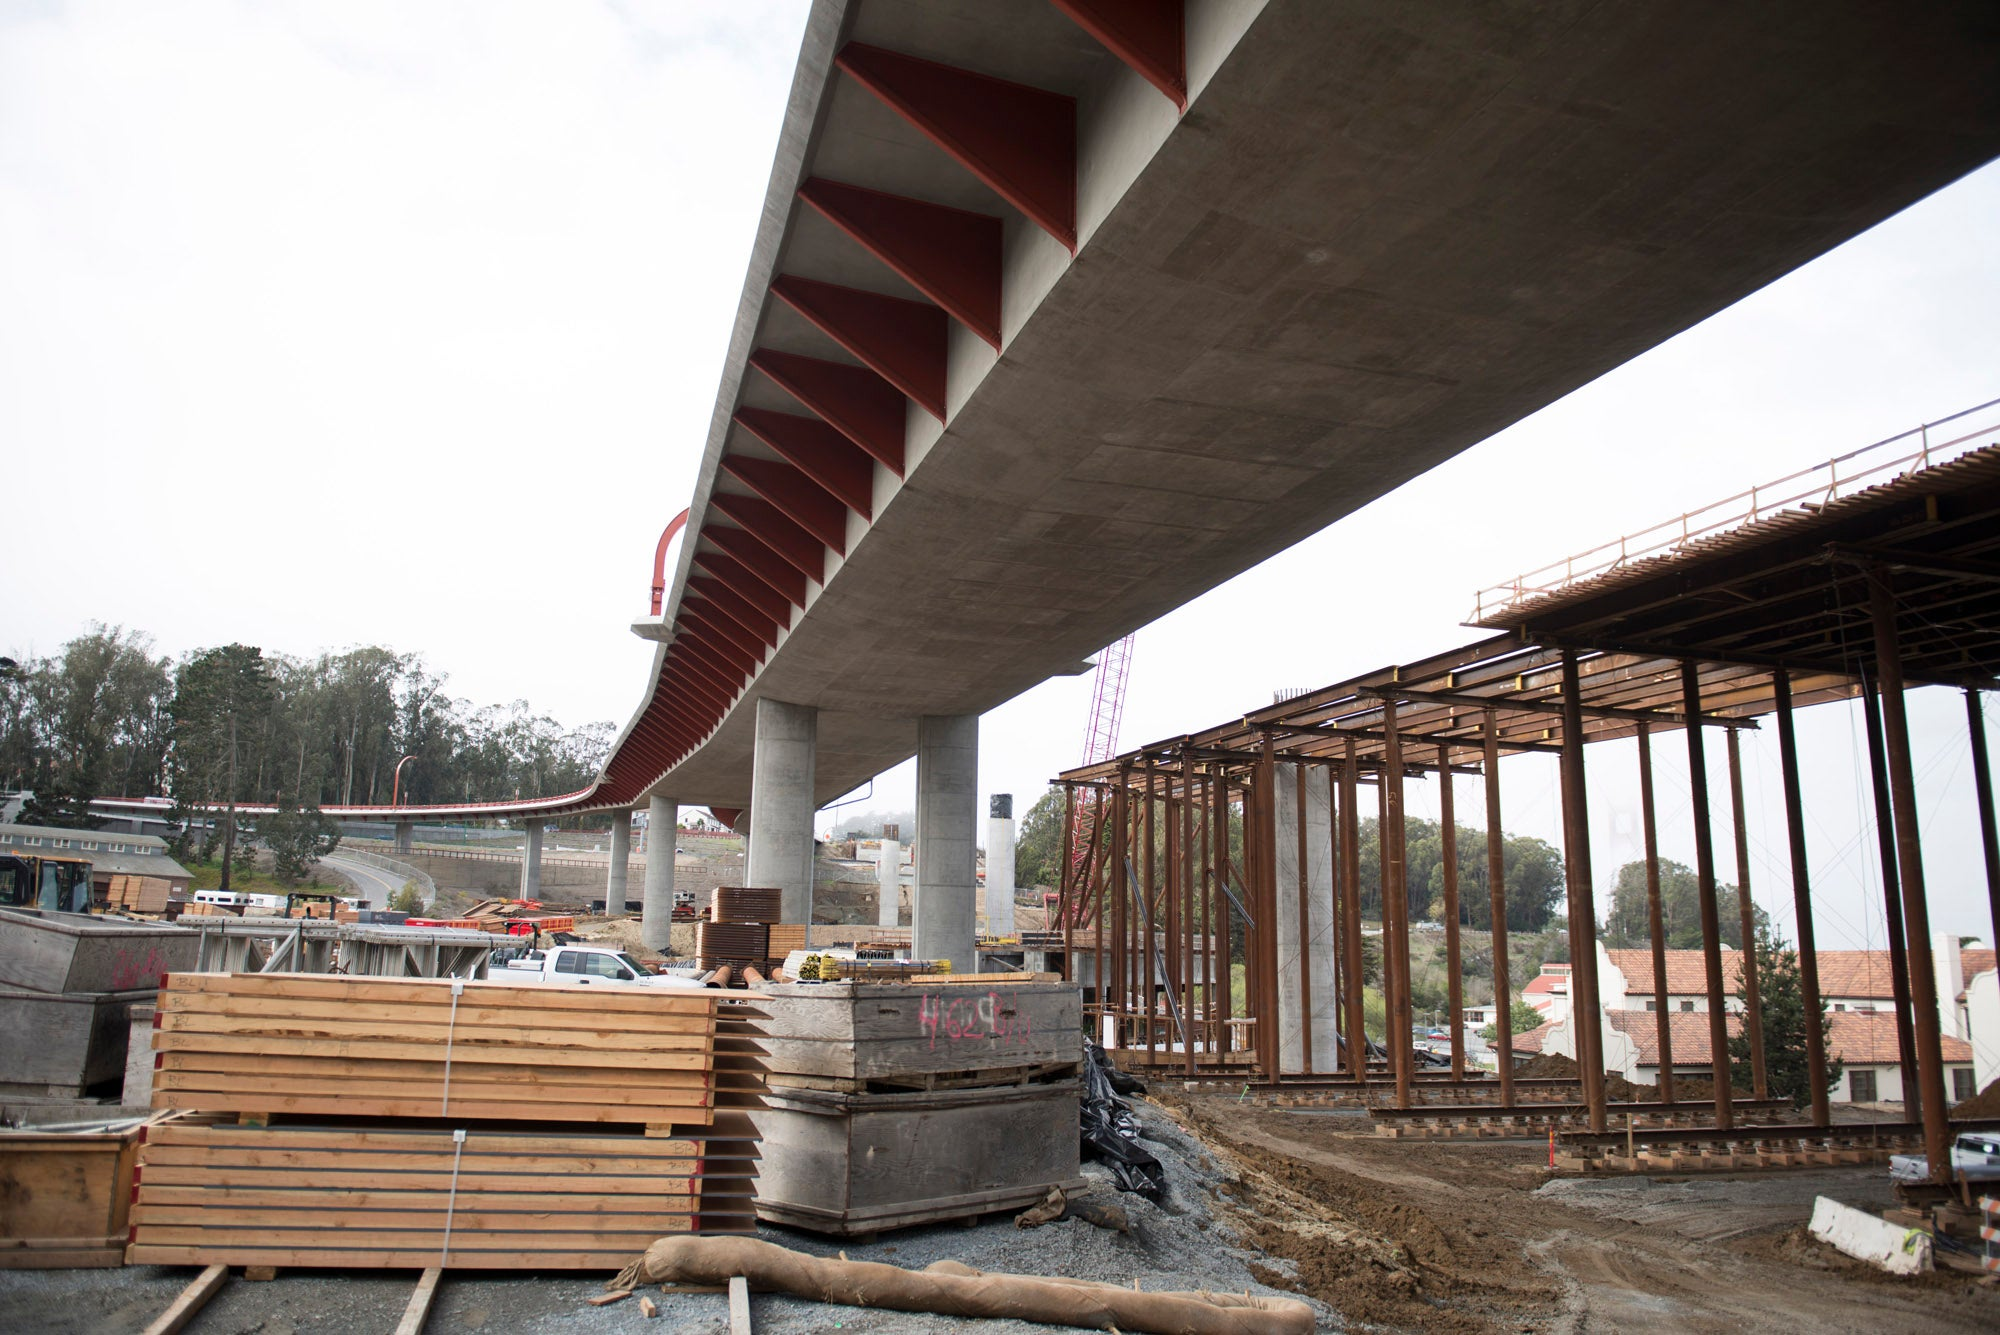 The northbound High Viaduct will be aesthetically identical to its southbound counterpart, which now carries traffic.